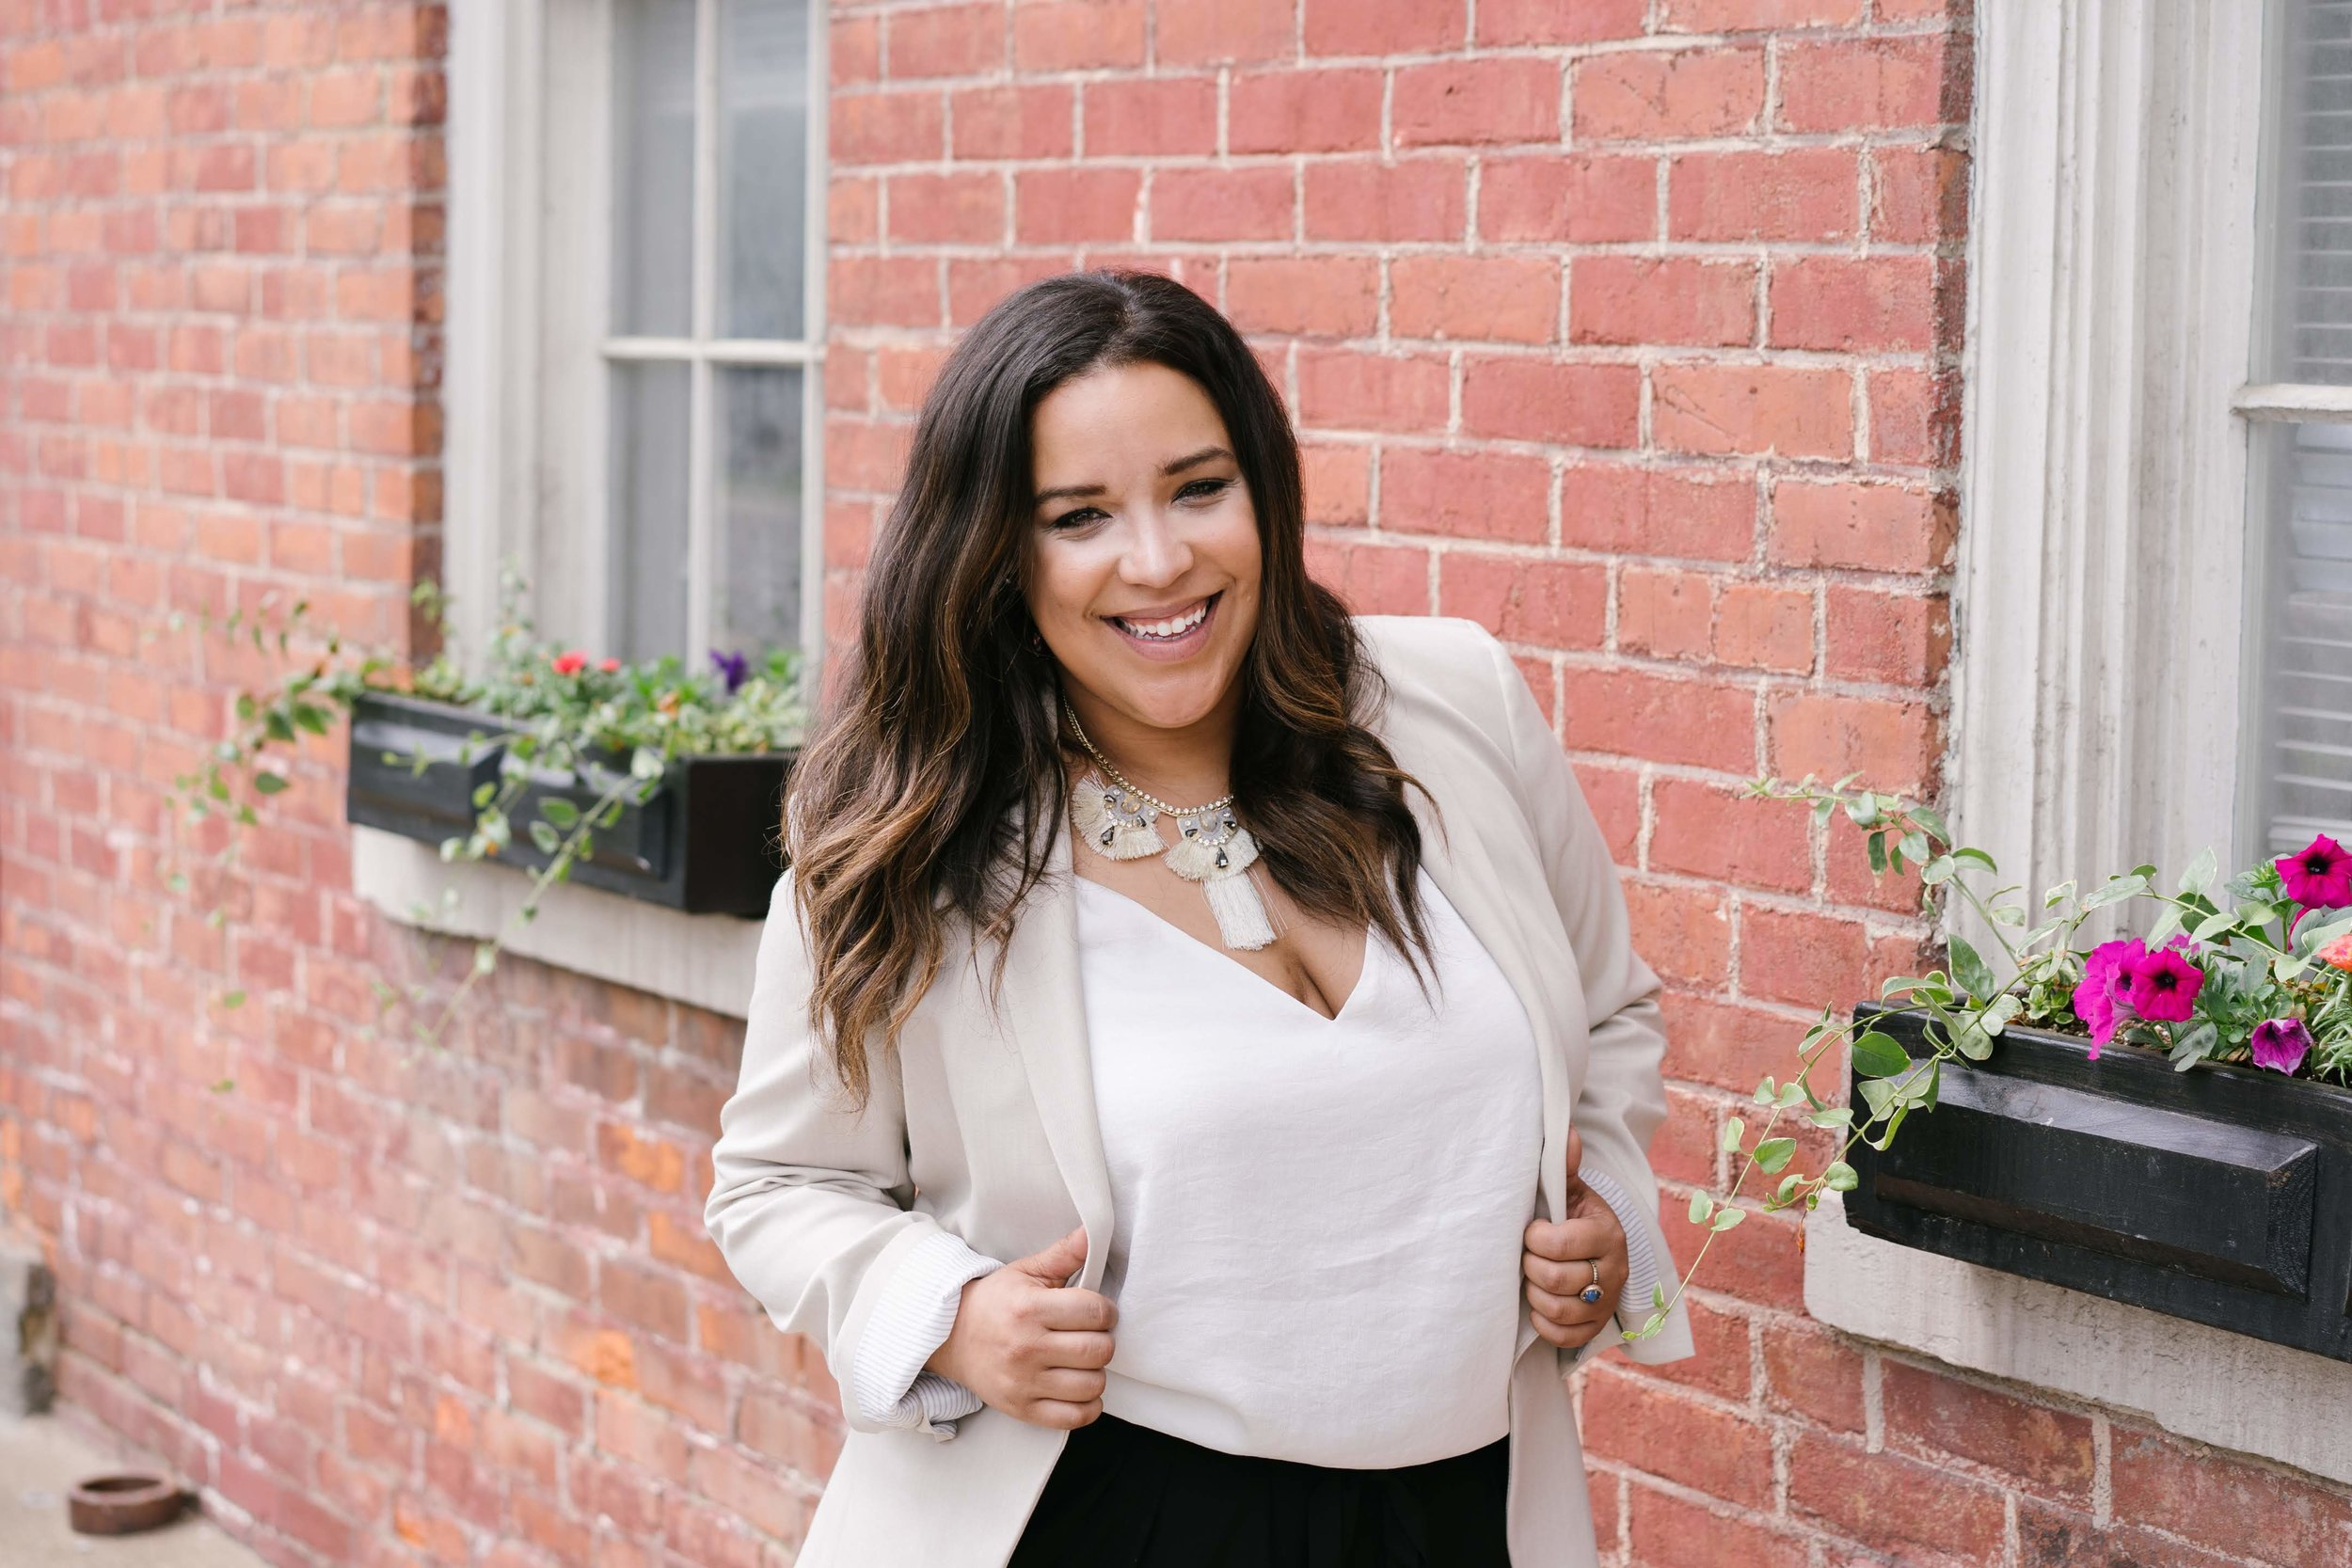 Hi, I'm Natasha  - Wedding planner, designer, creator of The Styled Series and fellow business dreamer! I love being in community with other wedding pros and helping each other's business' grow.The Styled Series was created with the word growth in mind. I wanted a place where education met creativity and was affordable for creatives in our community.I hope to see you at our next Styled Series event, please be ready for a warm smile and big hug, because I am a believer in both hugs and in you!Info@TheStyledSeries.com614.735.3656